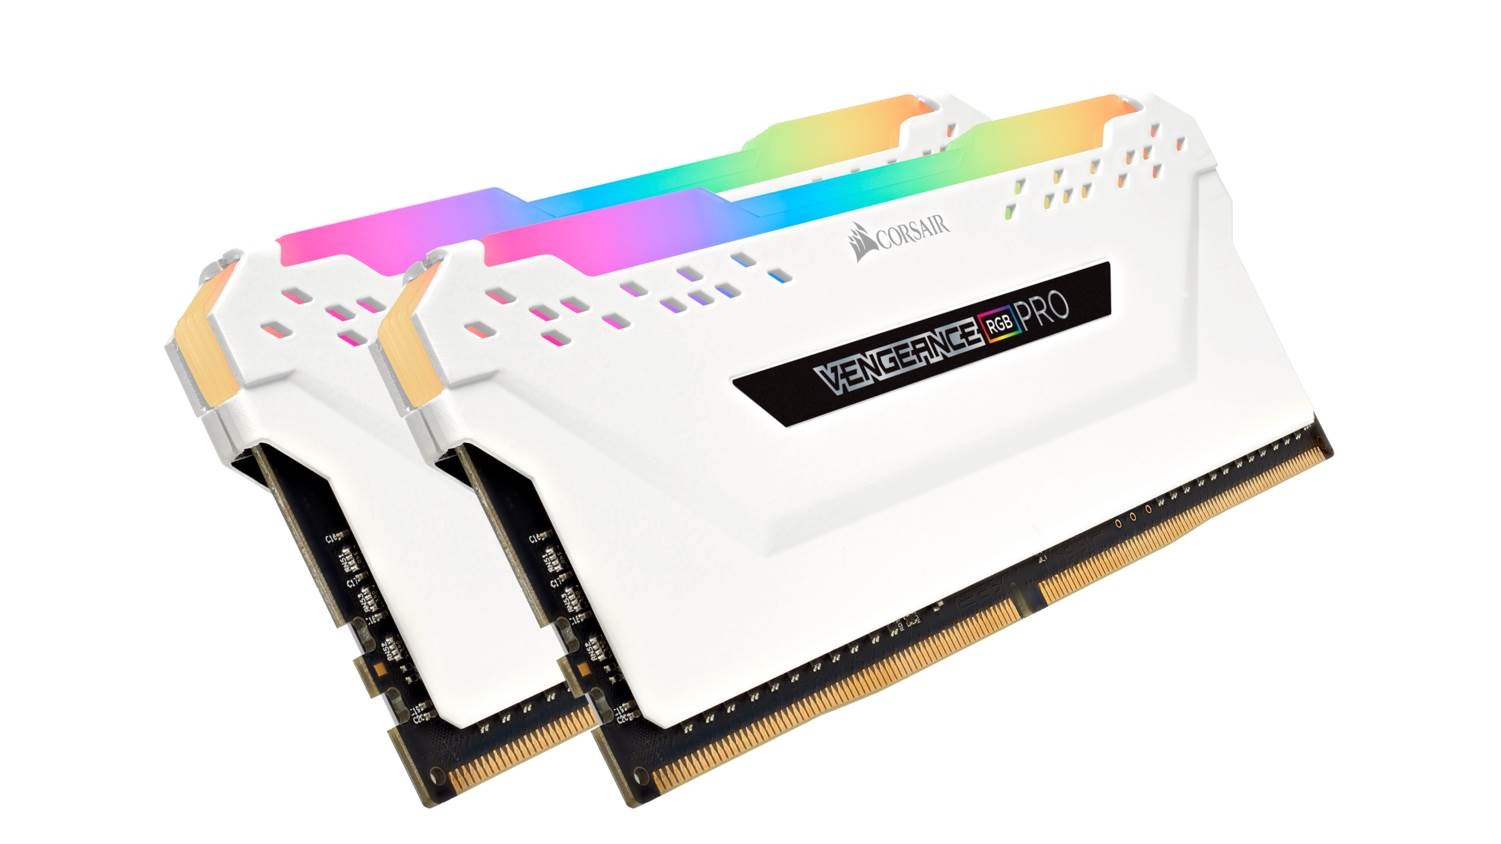 Corsair's 6400MHz DDR5 RAM is ready for next gen Intel and AMD PCs